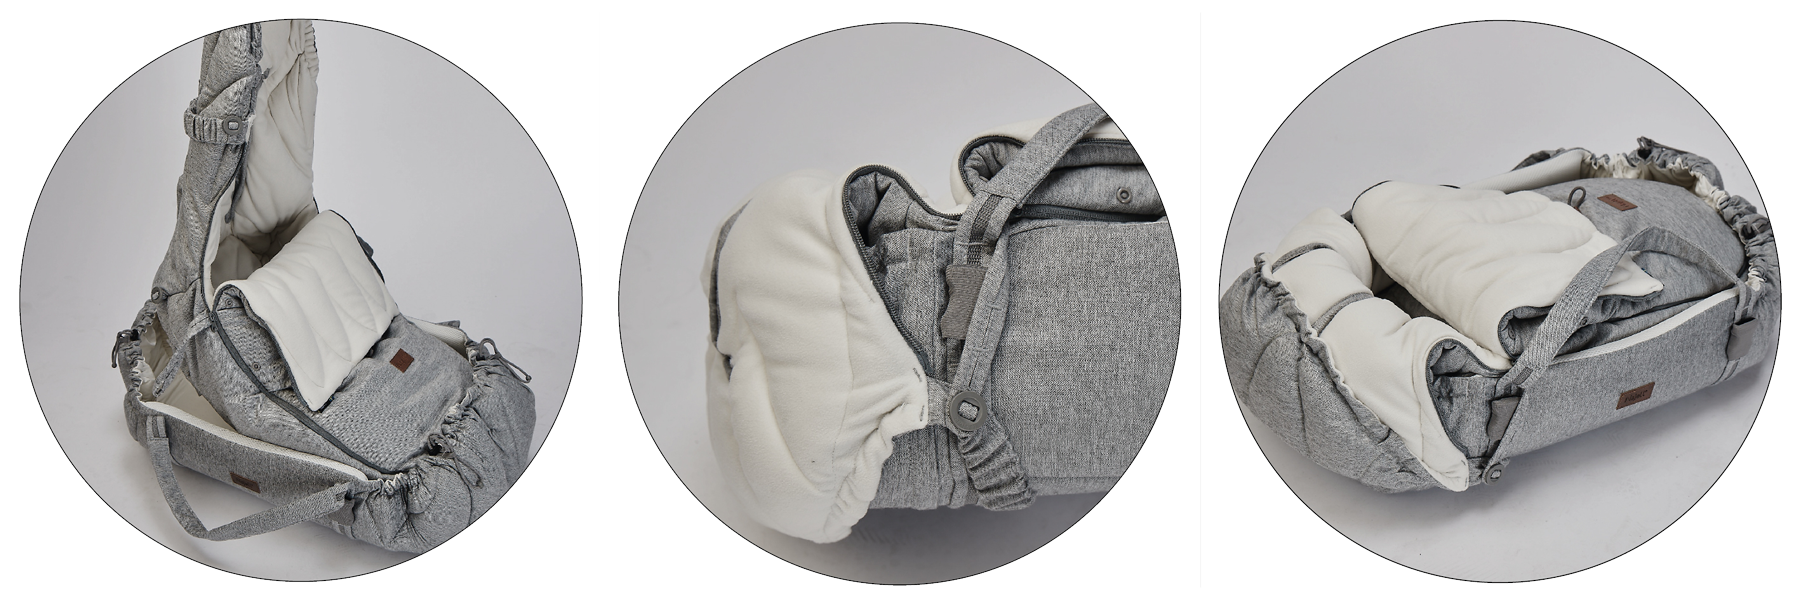 Use the SleepCarrier together with footmuff Winter Cover